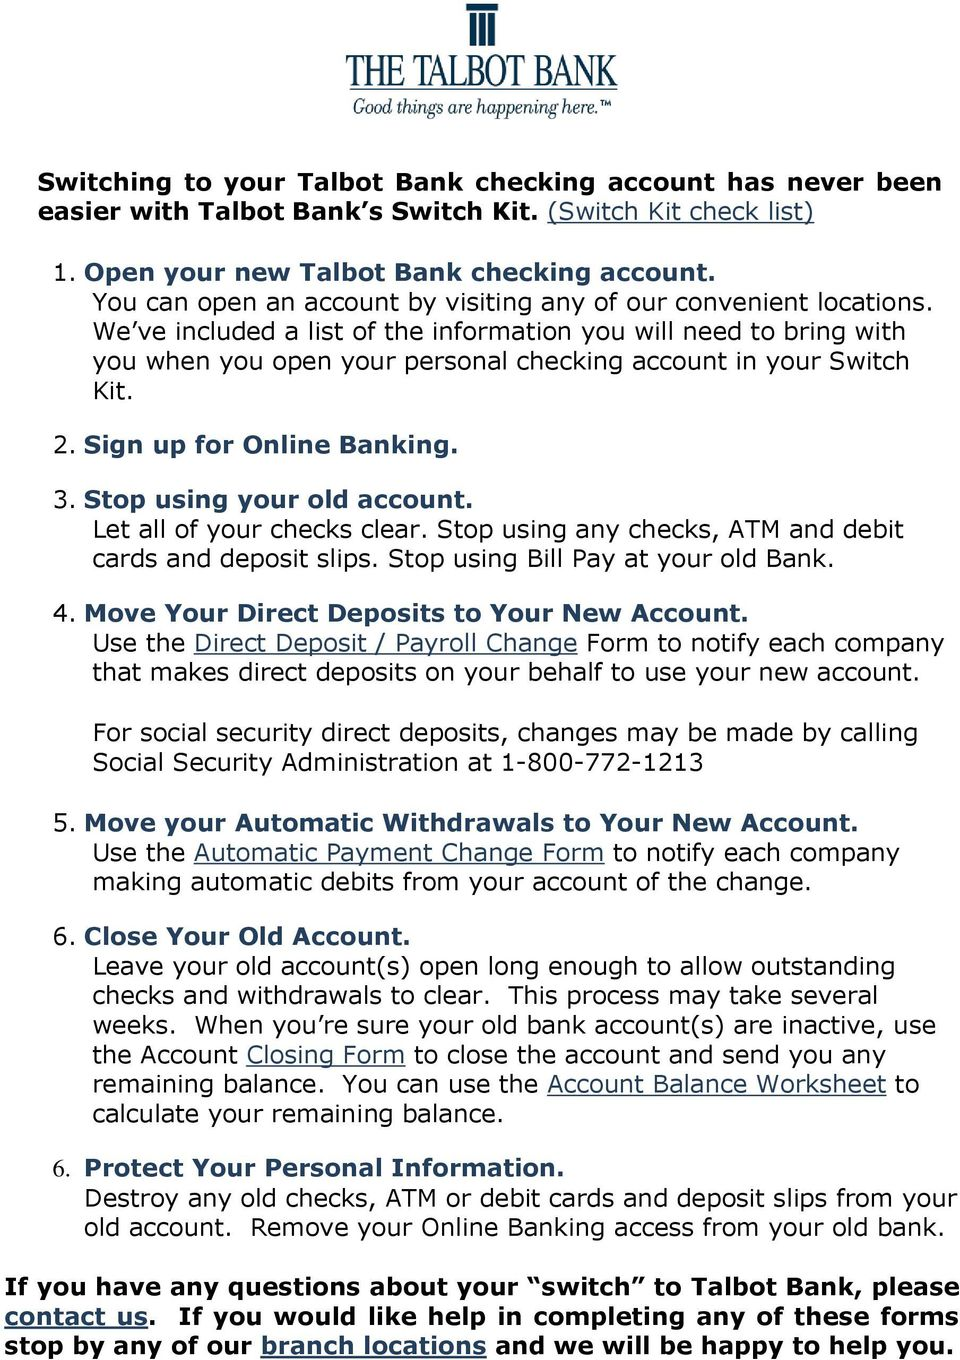 Switching to your Talbot Bank checking account has never been easier